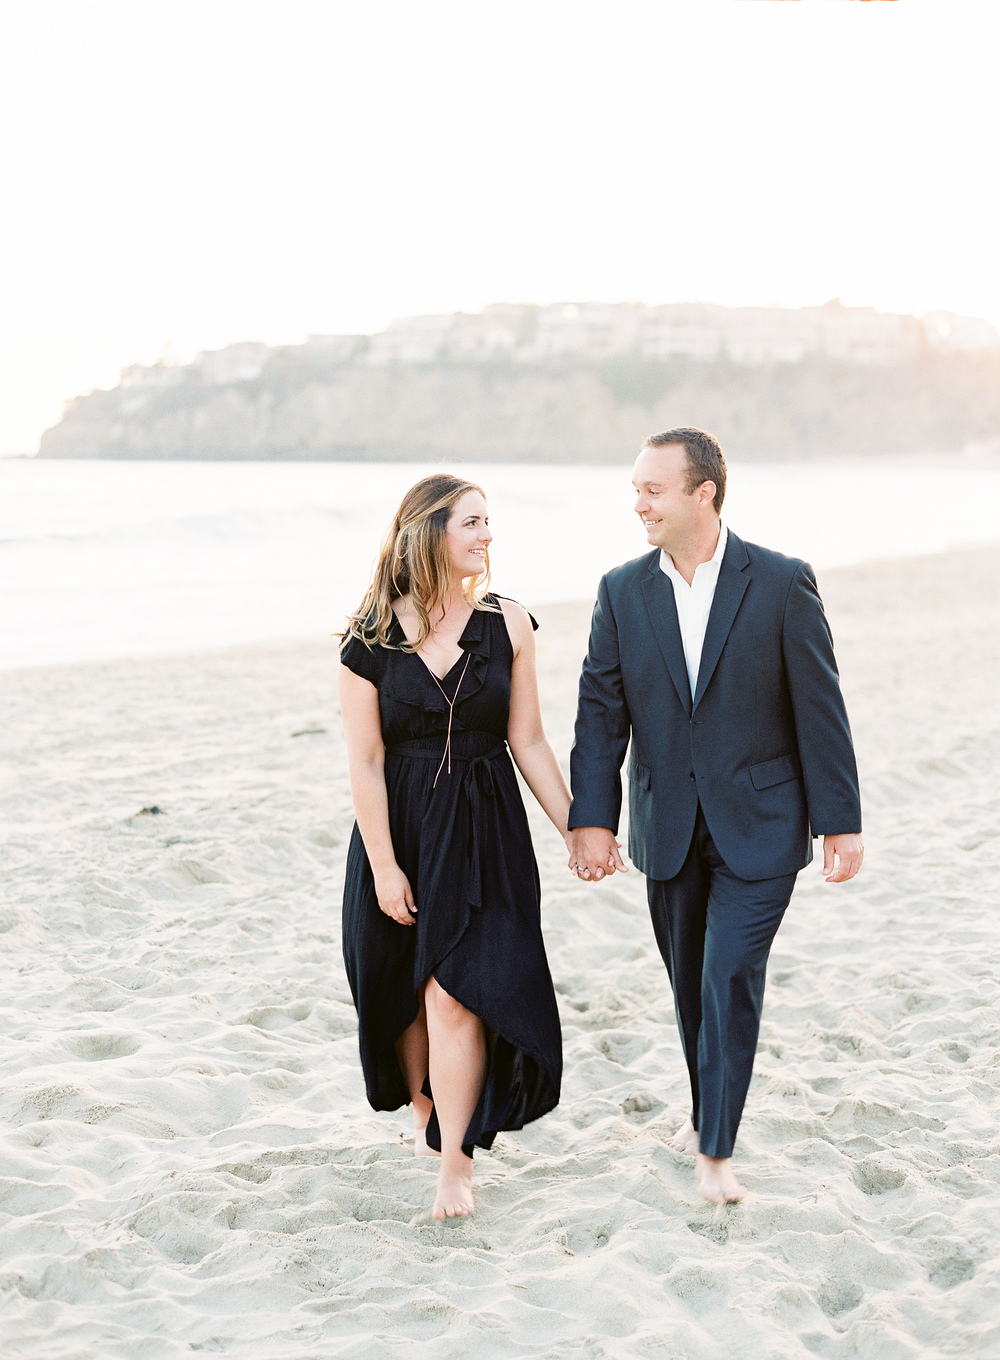 Laguna-Beach-Engagement-Film-Wedding-Orange-County-91.jpg